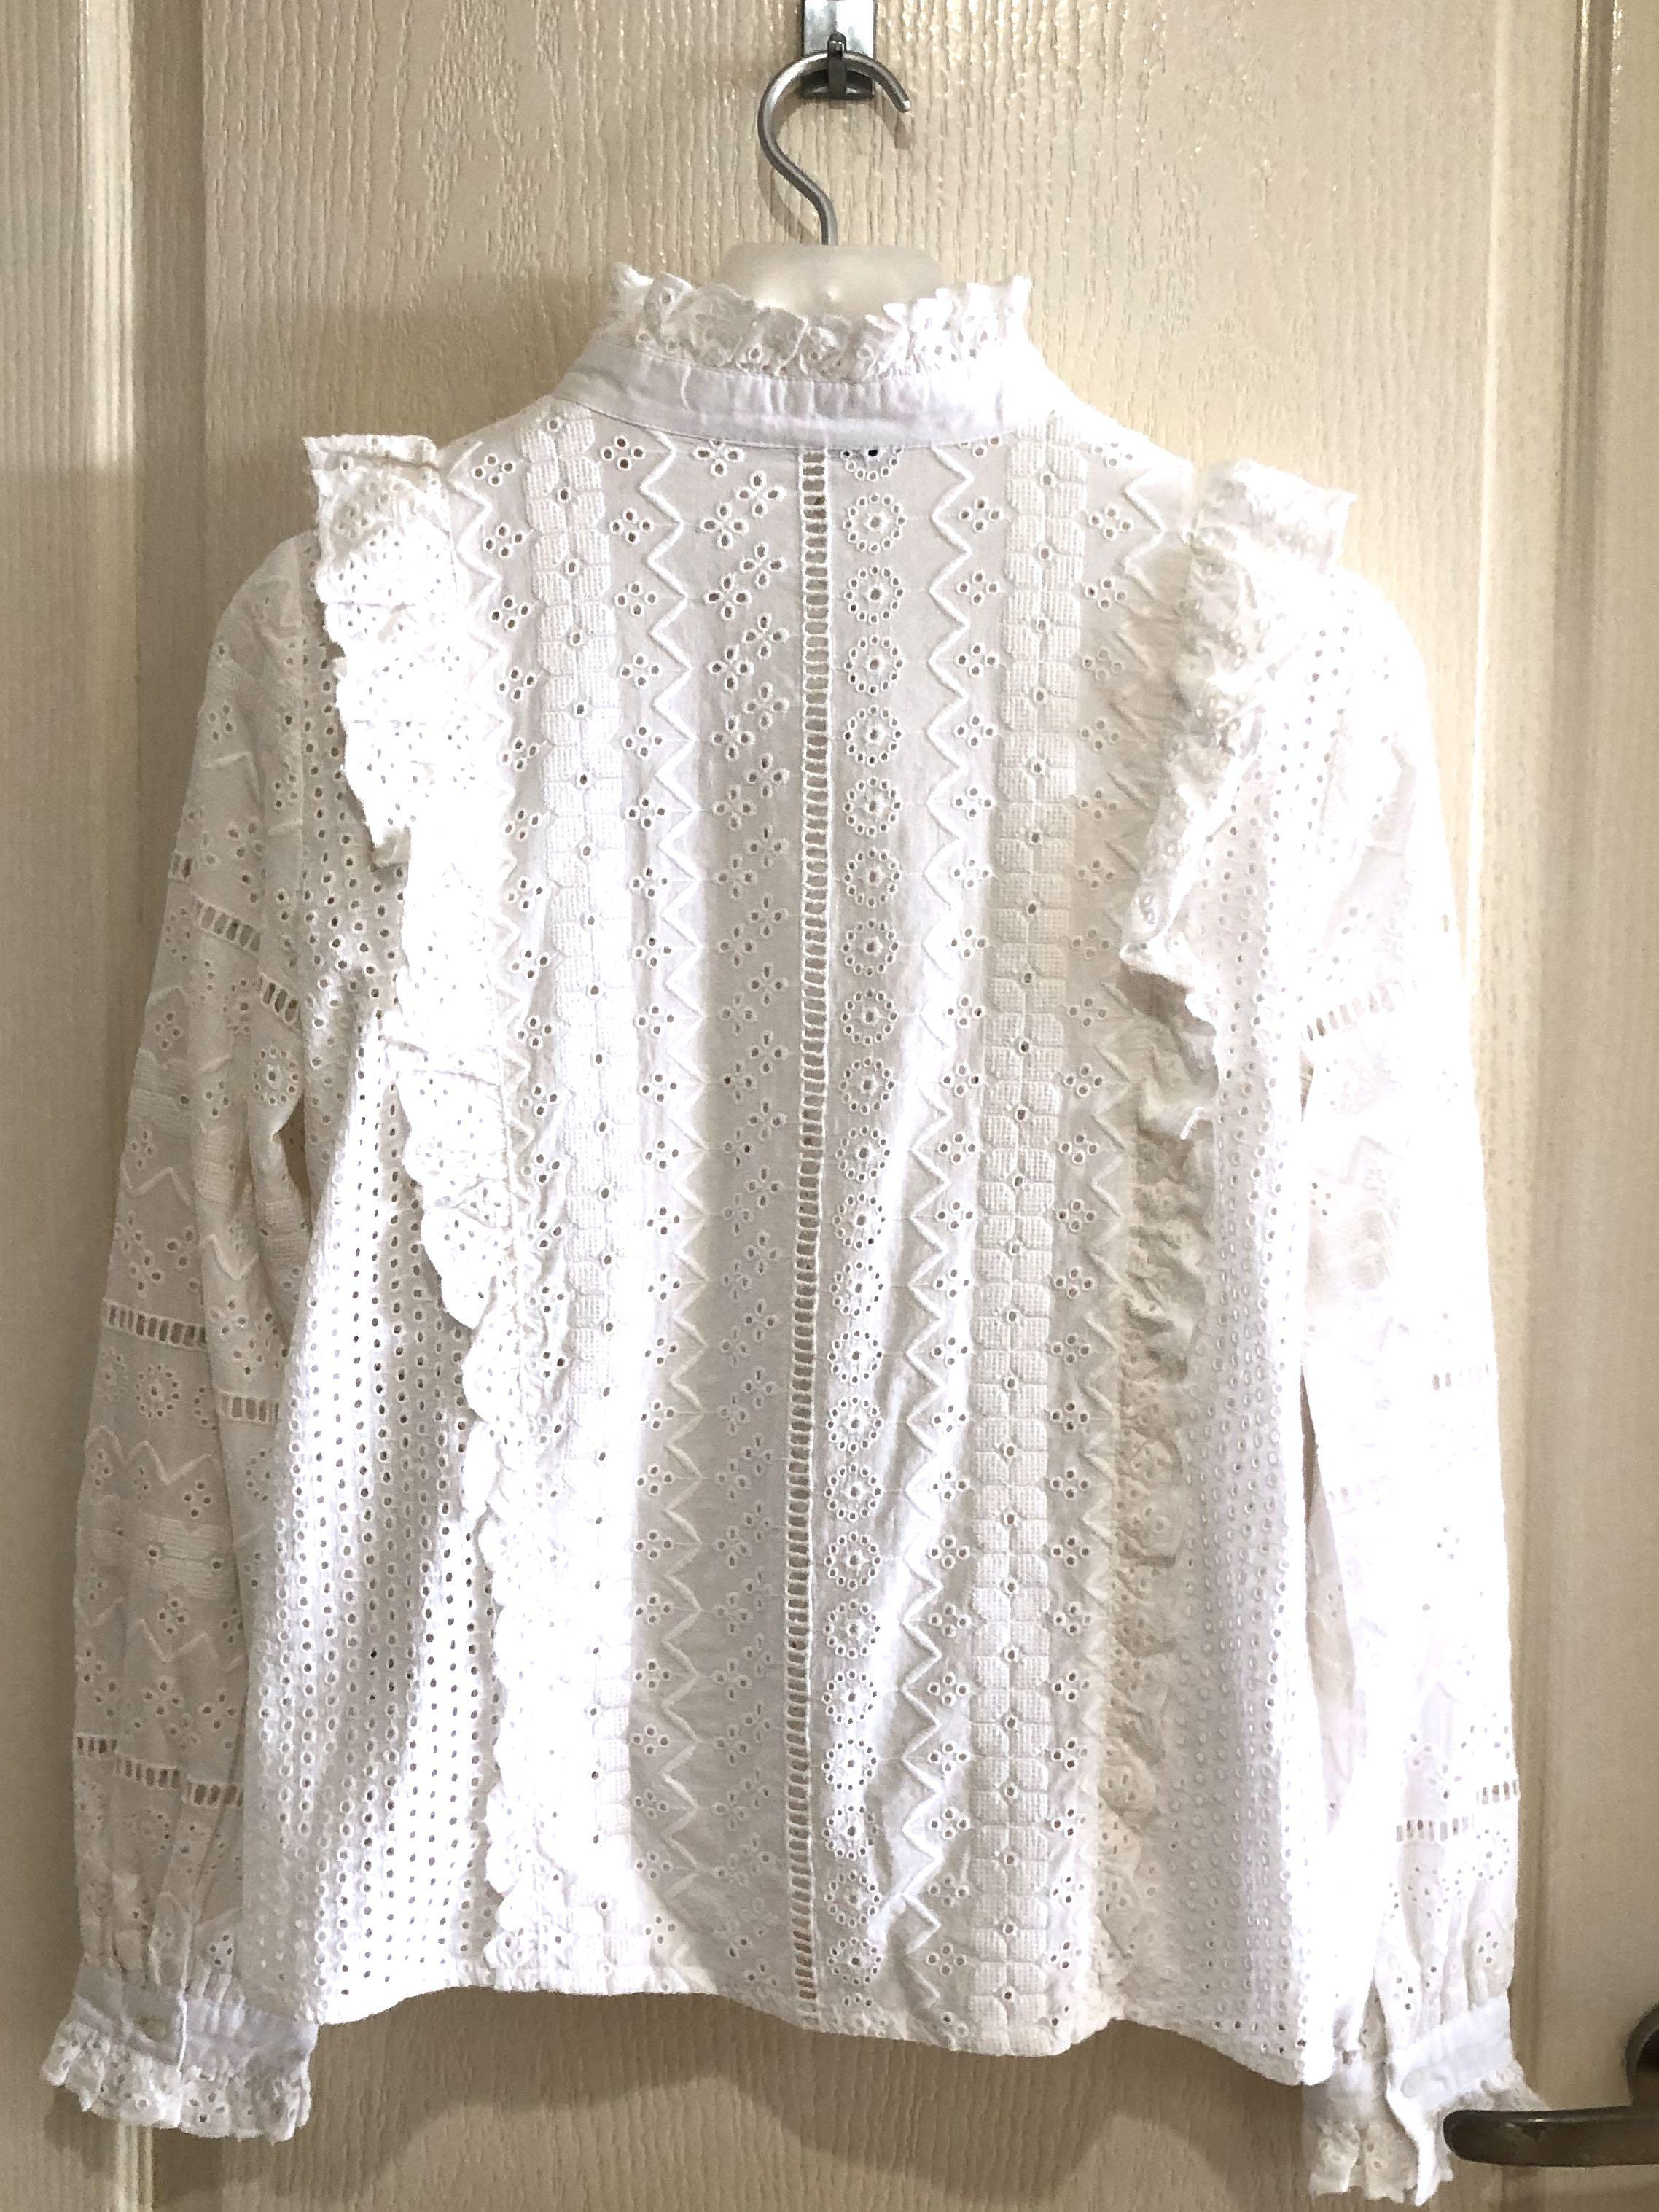 Zara Embroidered Top in White (BNWT - Size M)!